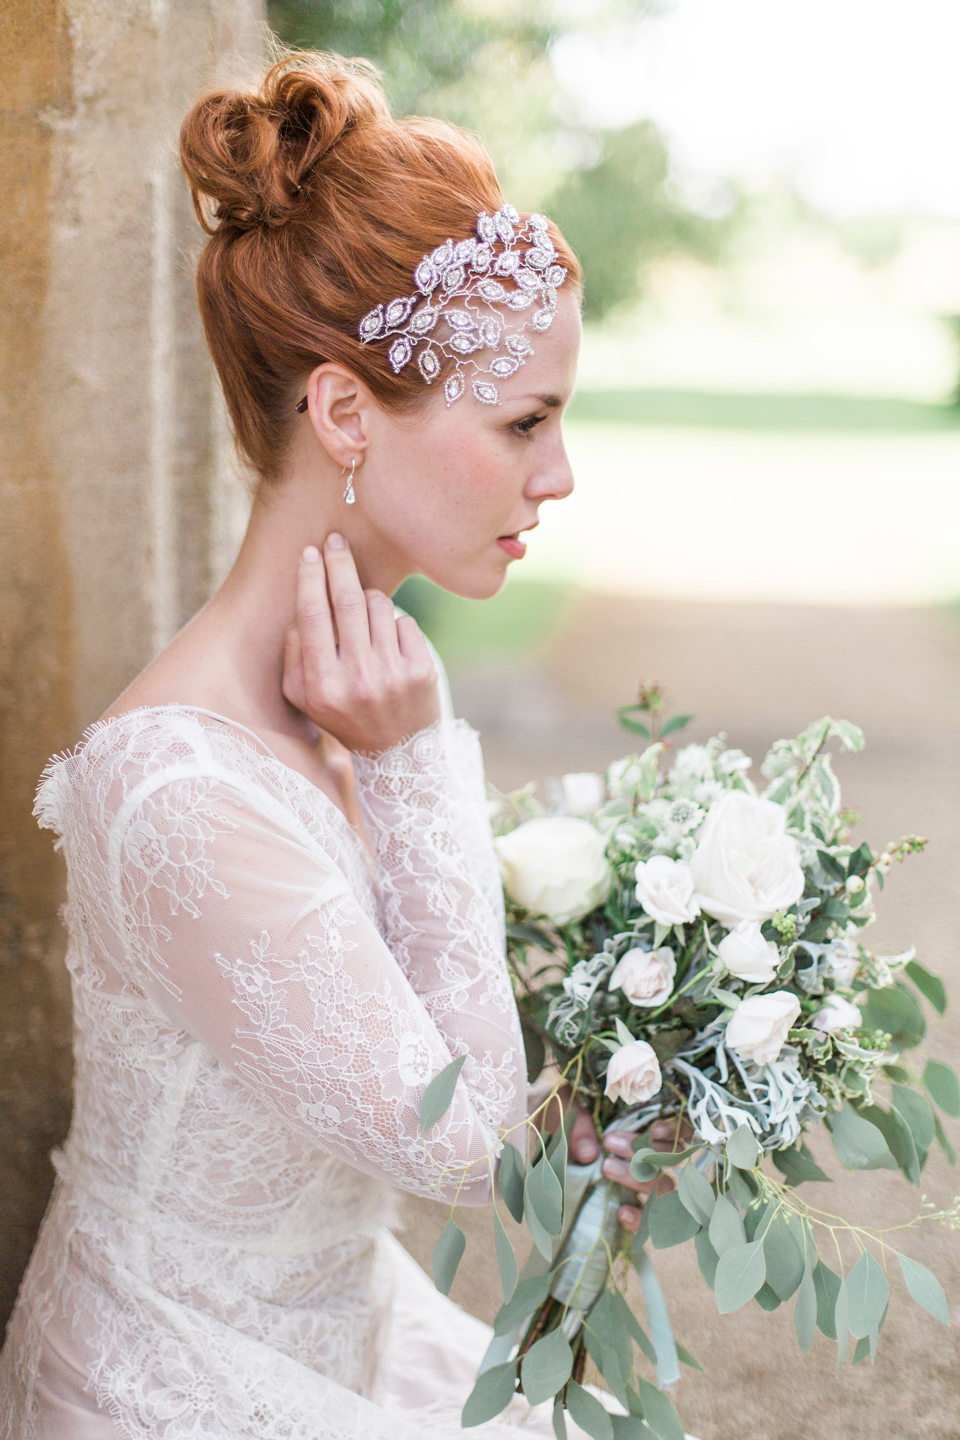 Hermione Harbutt: Nature Inspired Hair Vines and Headpieces for the Fine Art Inspired Bride (Bridal Fashion Fashion & Beauty Get Inspired Styled Shoots Supplier Spotlight )